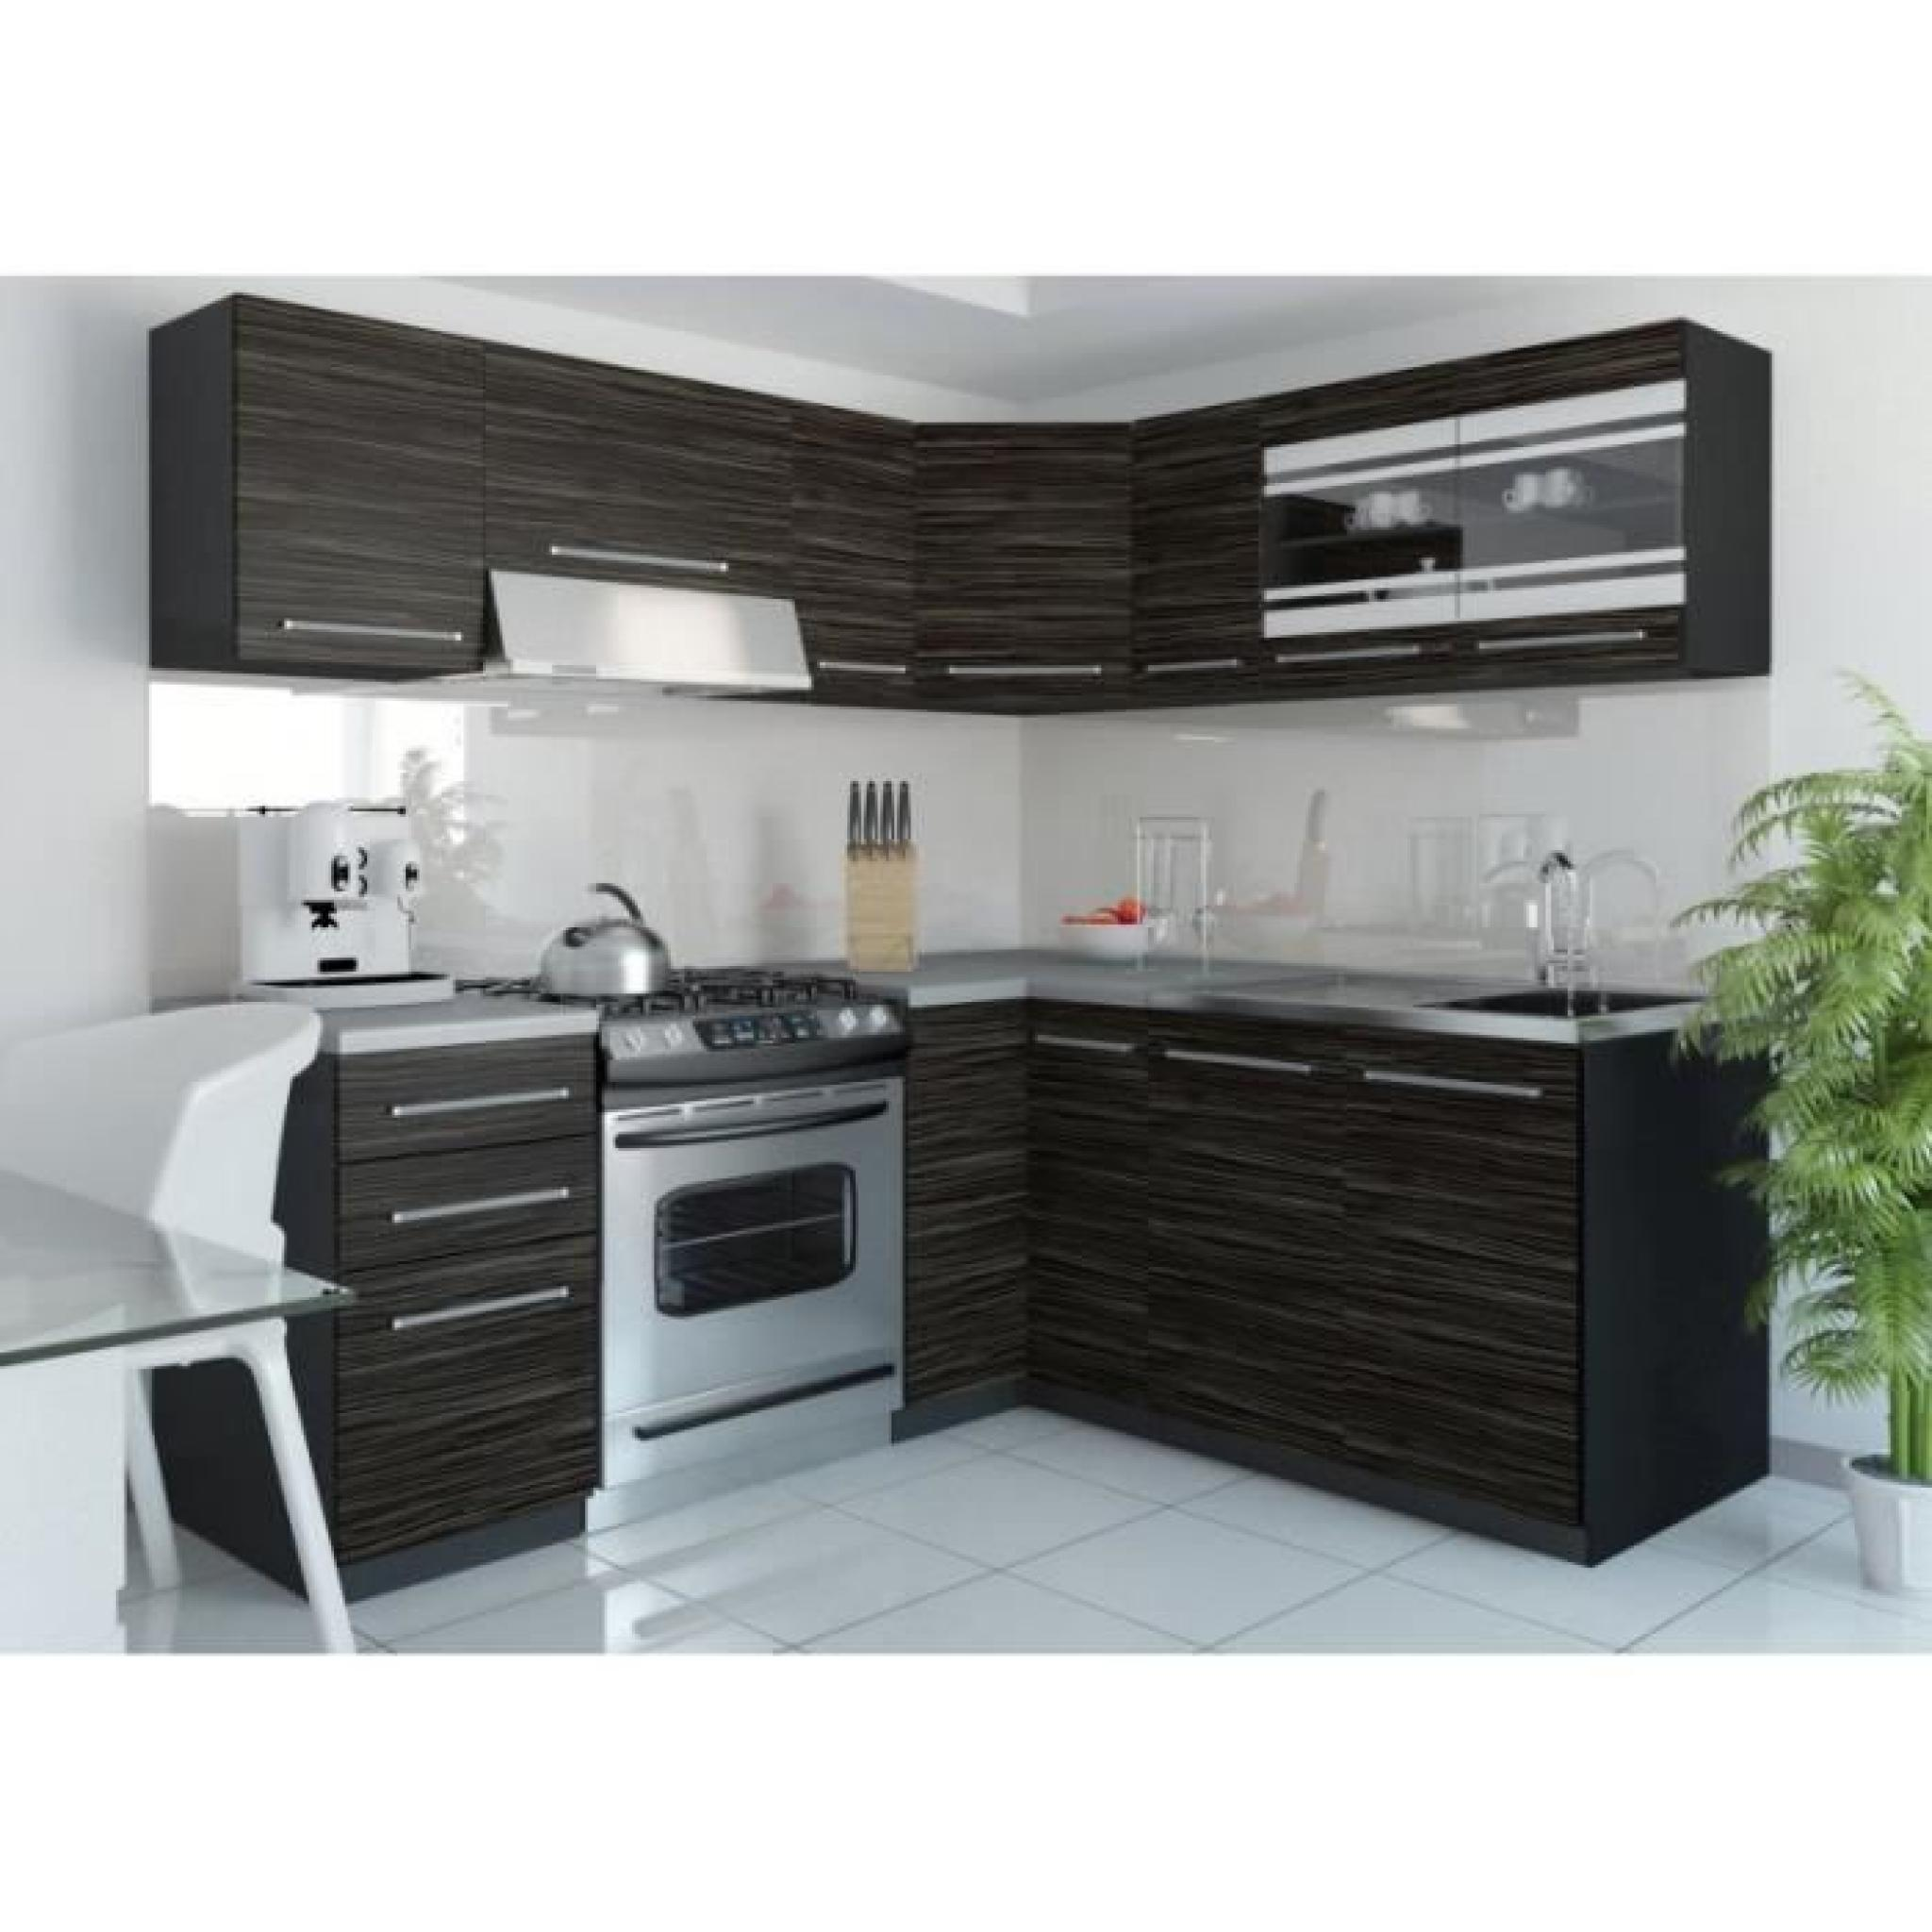 justhome torino 4 l cuisine quip e compl te 190x170 cm. Black Bedroom Furniture Sets. Home Design Ideas